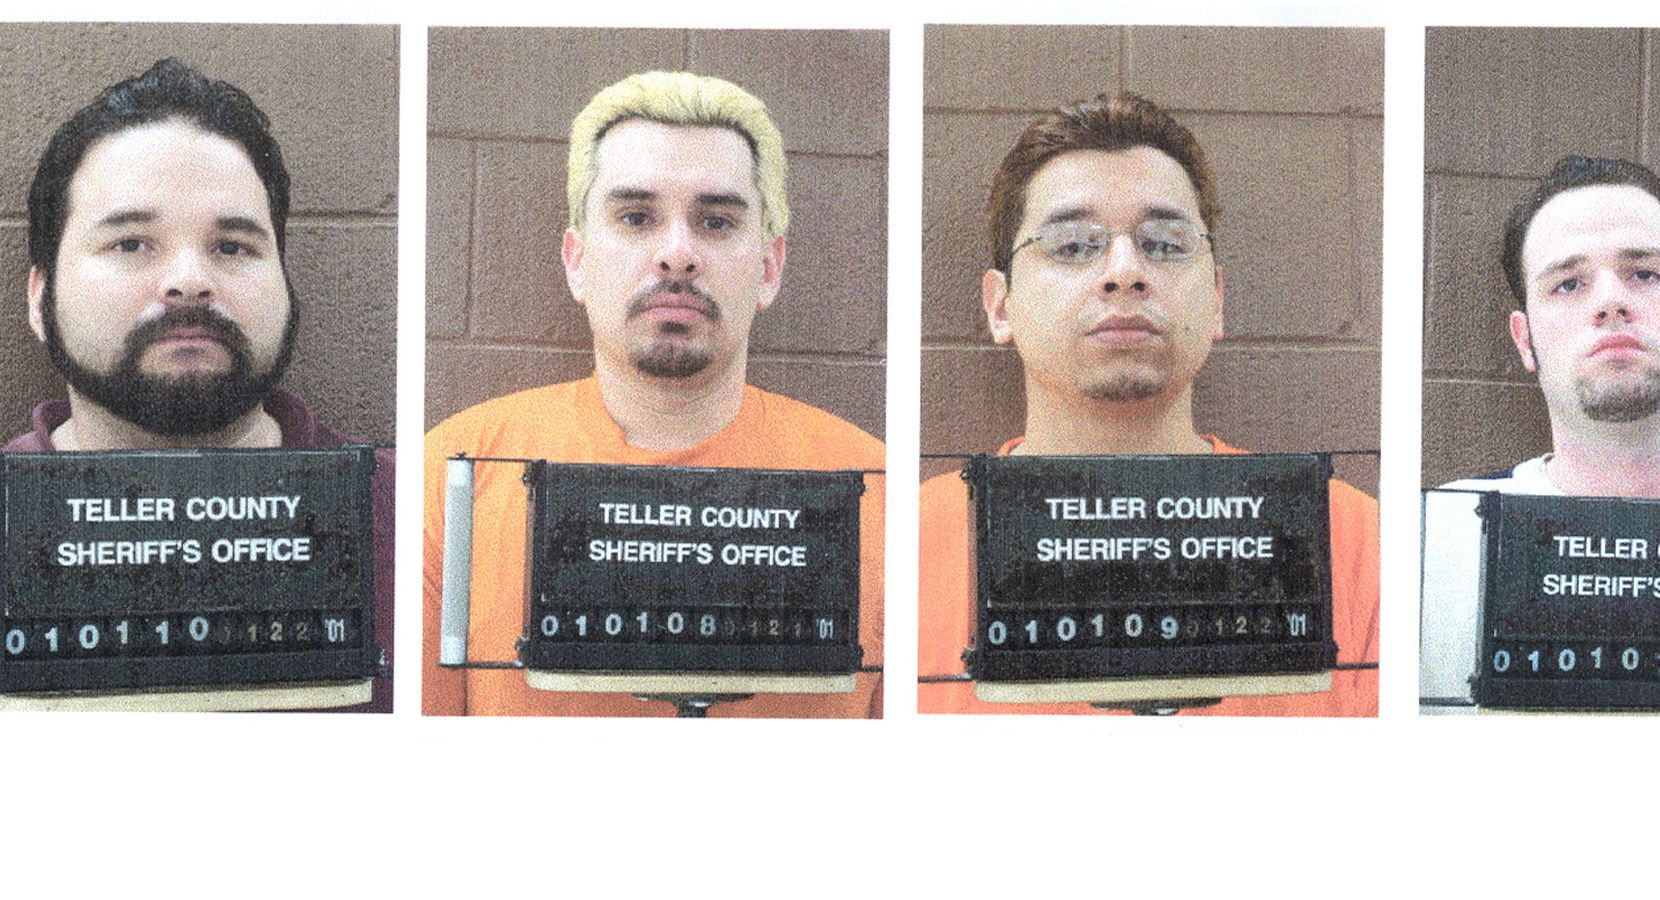 The Teller County Sheriff's office released the booking mug shots of the four Texas prison escapees who were apprehended in Woodland Park, Colo., in  2001. From left: Michael Anthony Rodriguez, George Angel Rivas, Joseph Christopher Garcia and Randy Ethan Halprin.